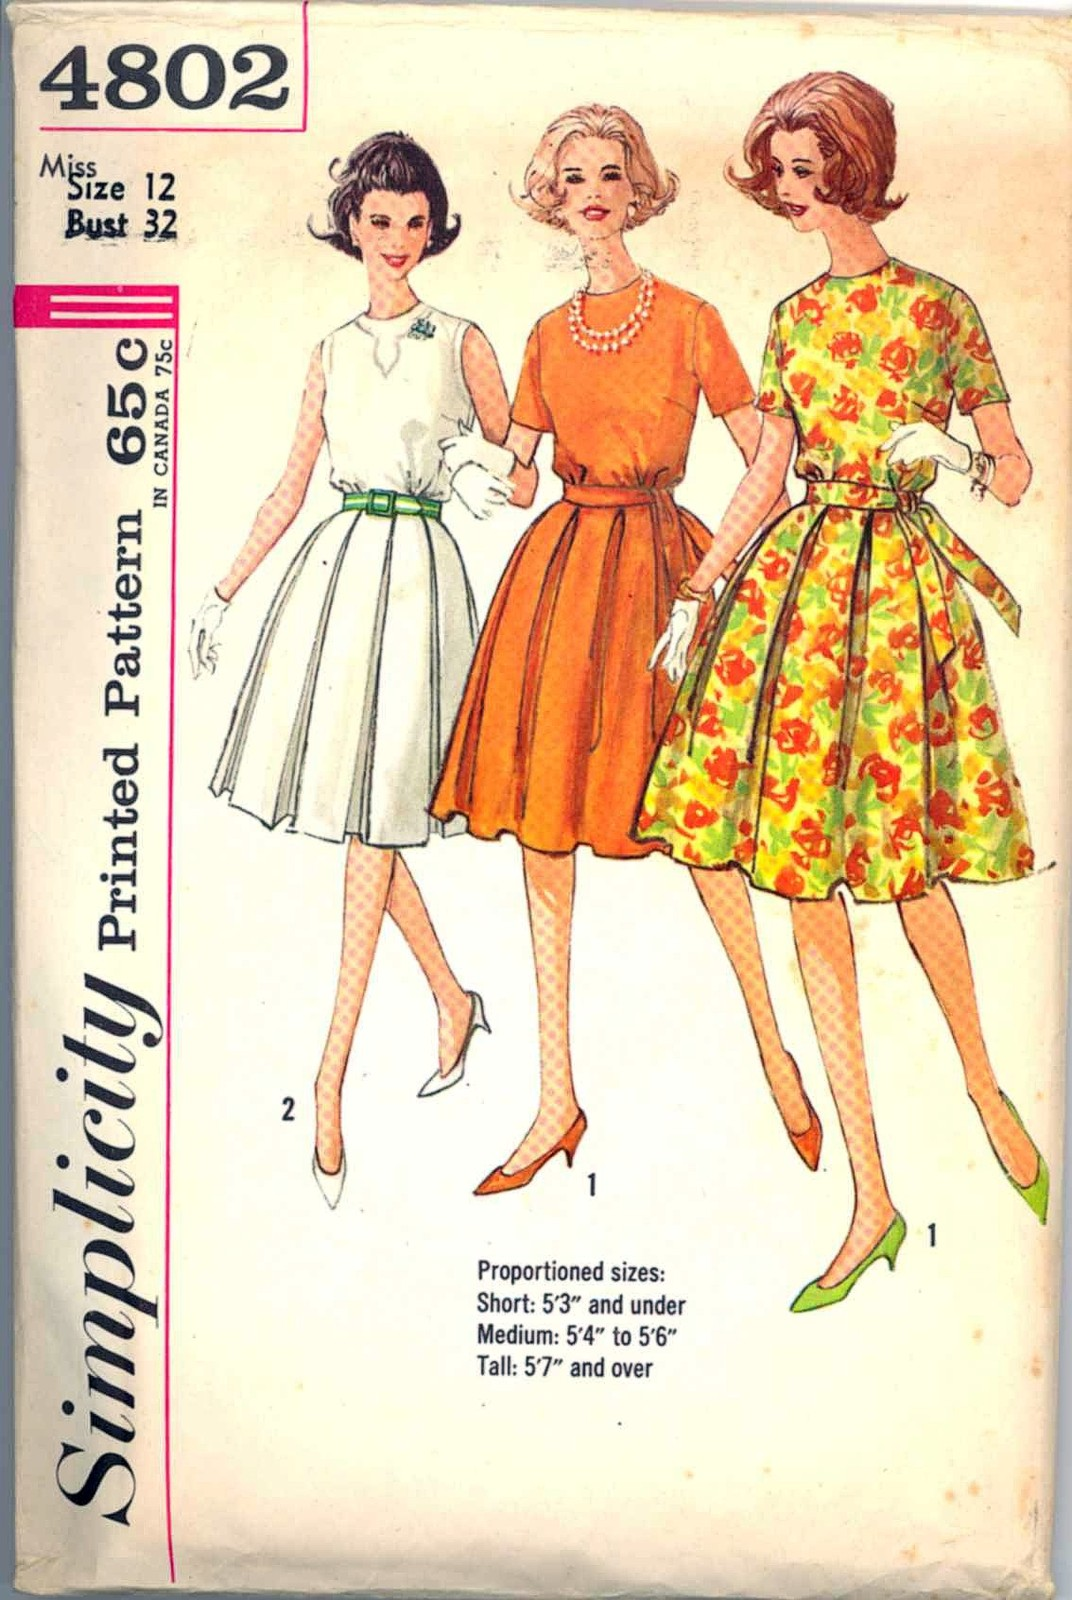 Primary image for 1960s Size 12 Bust 32 Proportioned Dress Pleated Skirt Simplicity 4802 Pattern